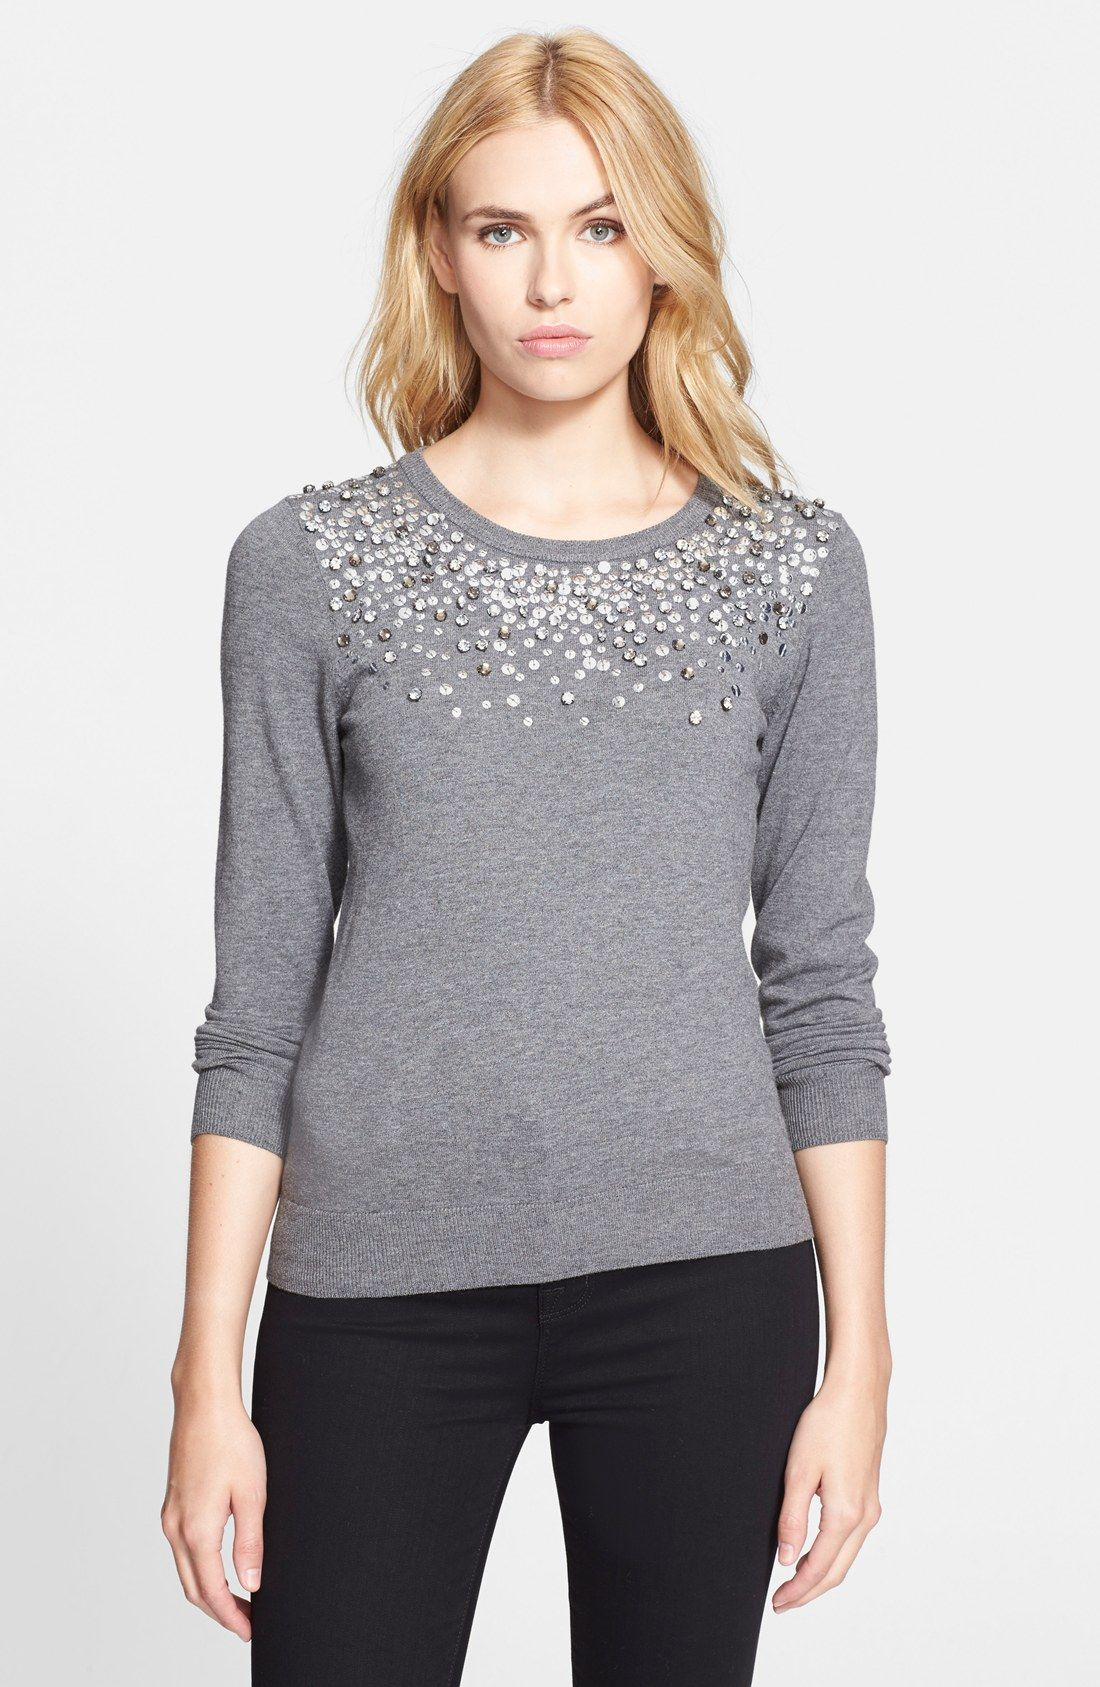 Captived Sparkly Sequins And Rhinestones Milly Sweater. Fall Fashion